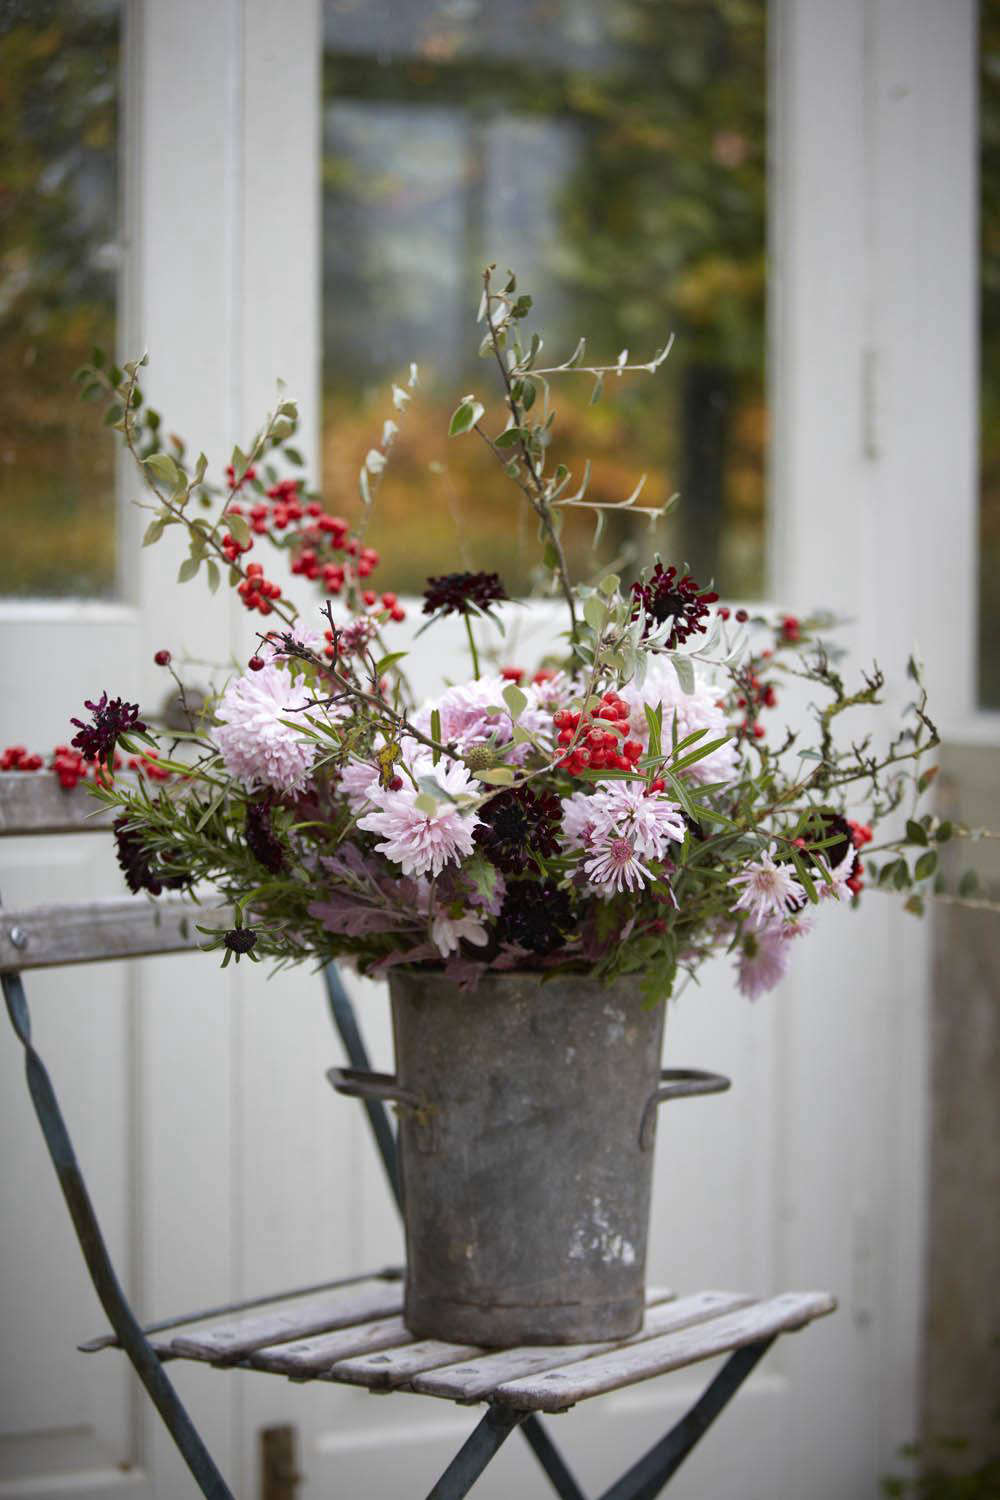 An early winter arrangement with red berries of cotoneaster, handfuls of rosemary, and dark scabious &#8